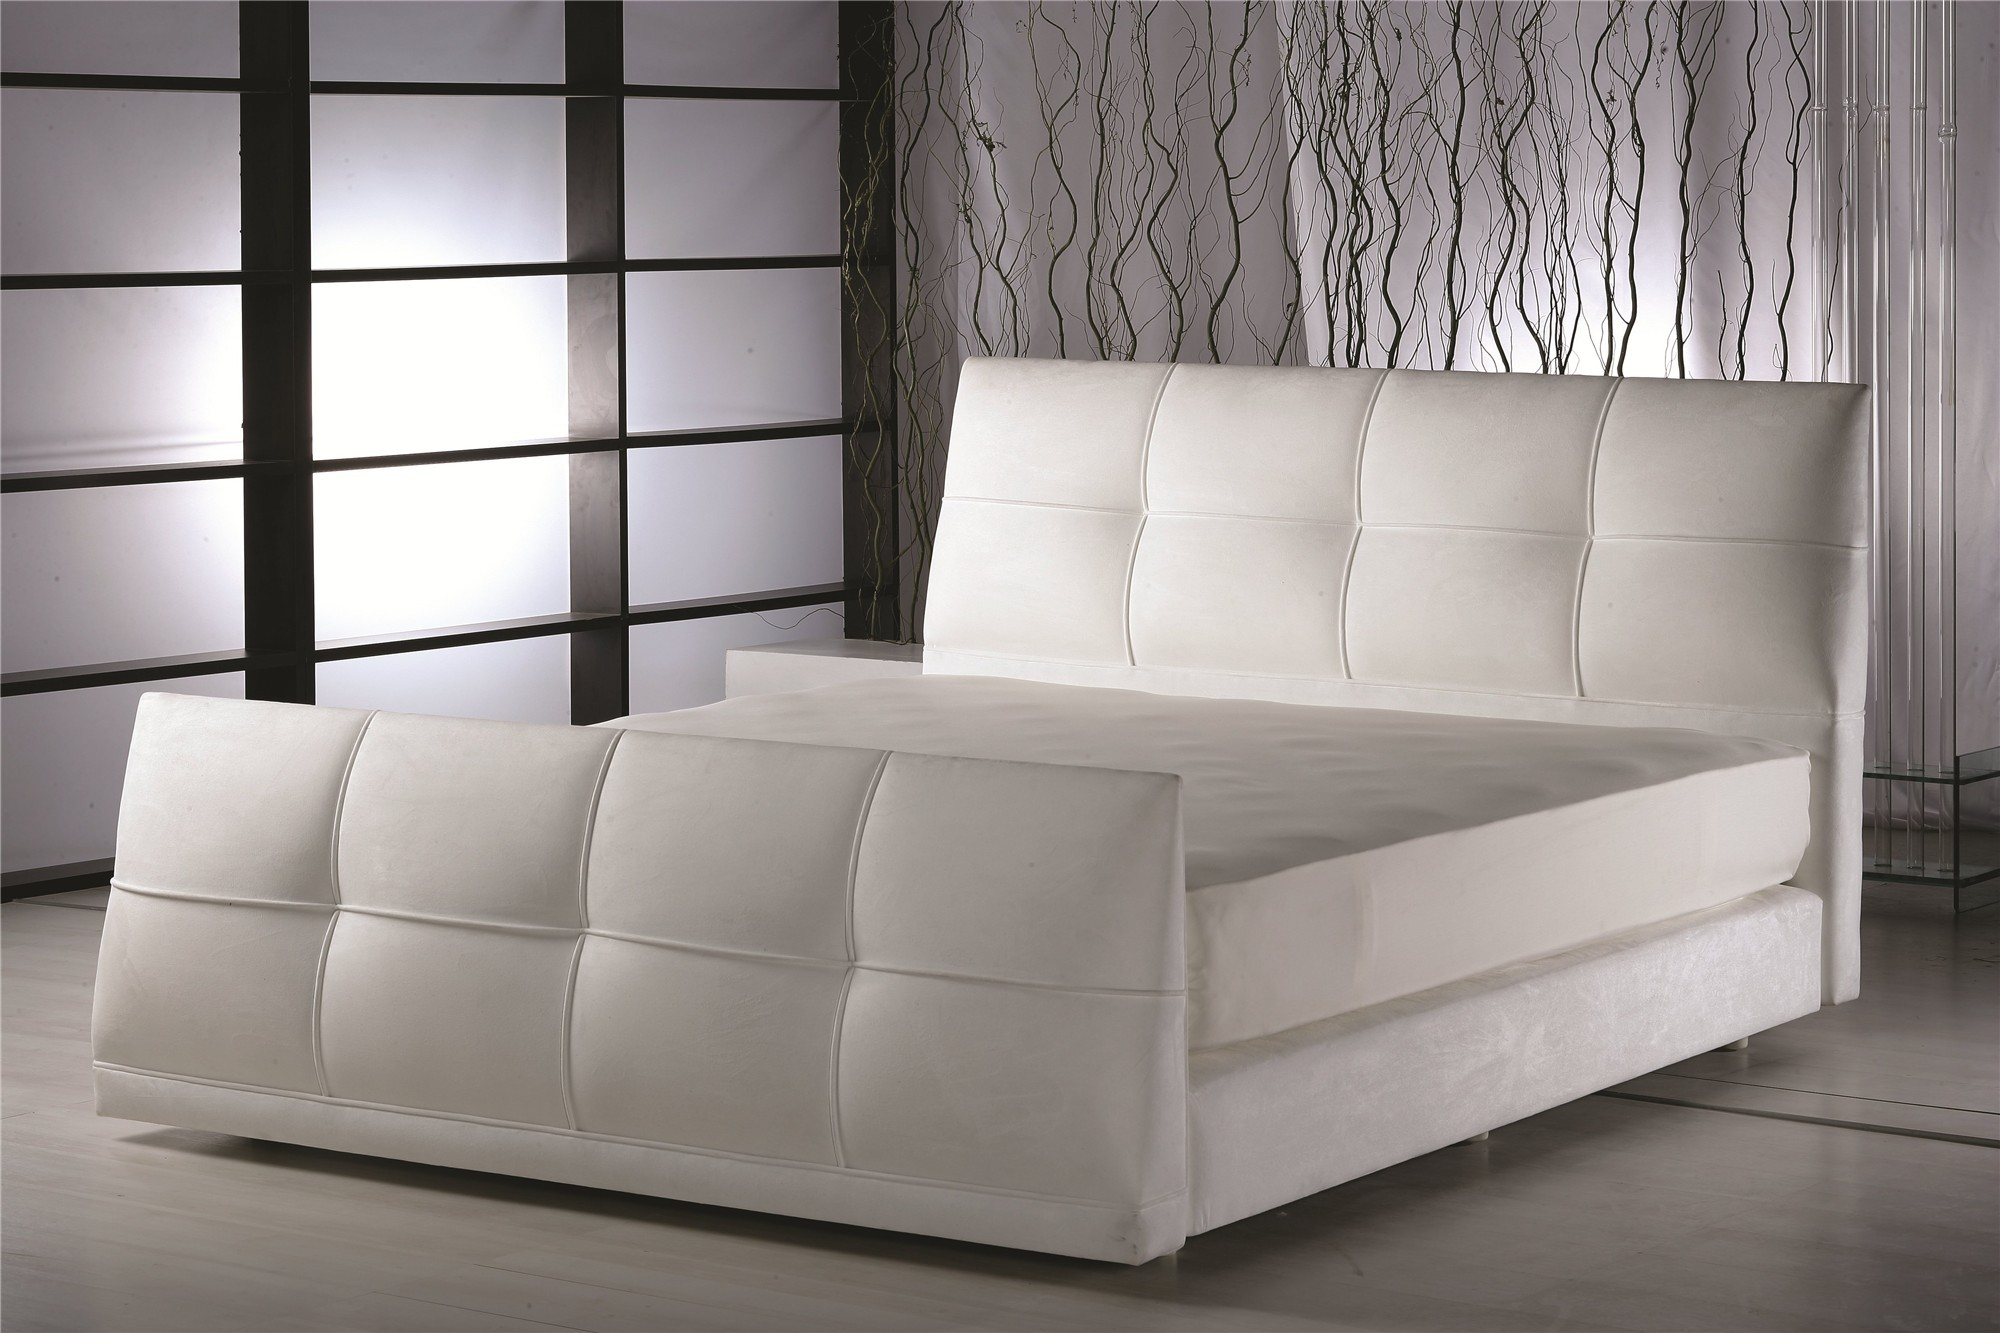 yatsan violette modern upholstered bed with footboard. yatsan violette modern upholstered bed with footboard  headbed uk